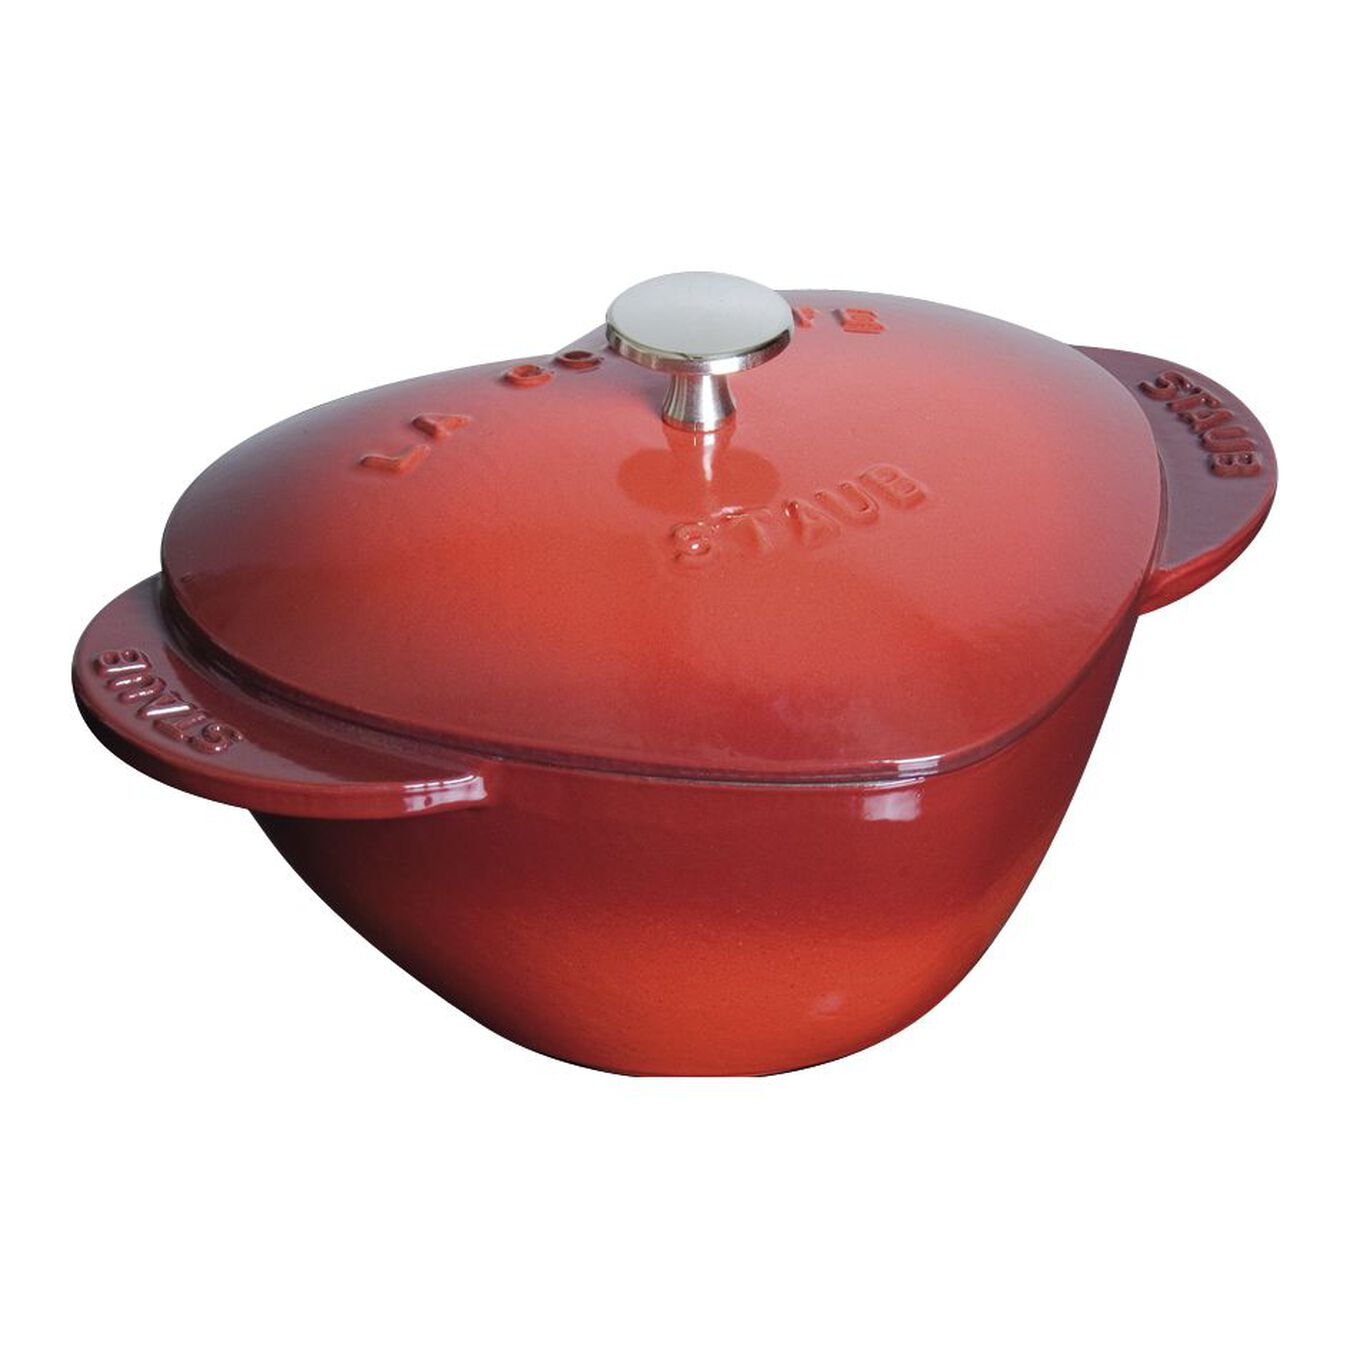 Cocotte 20 cm, Herz, Kirsch-Rot, Gusseisen,,large 1